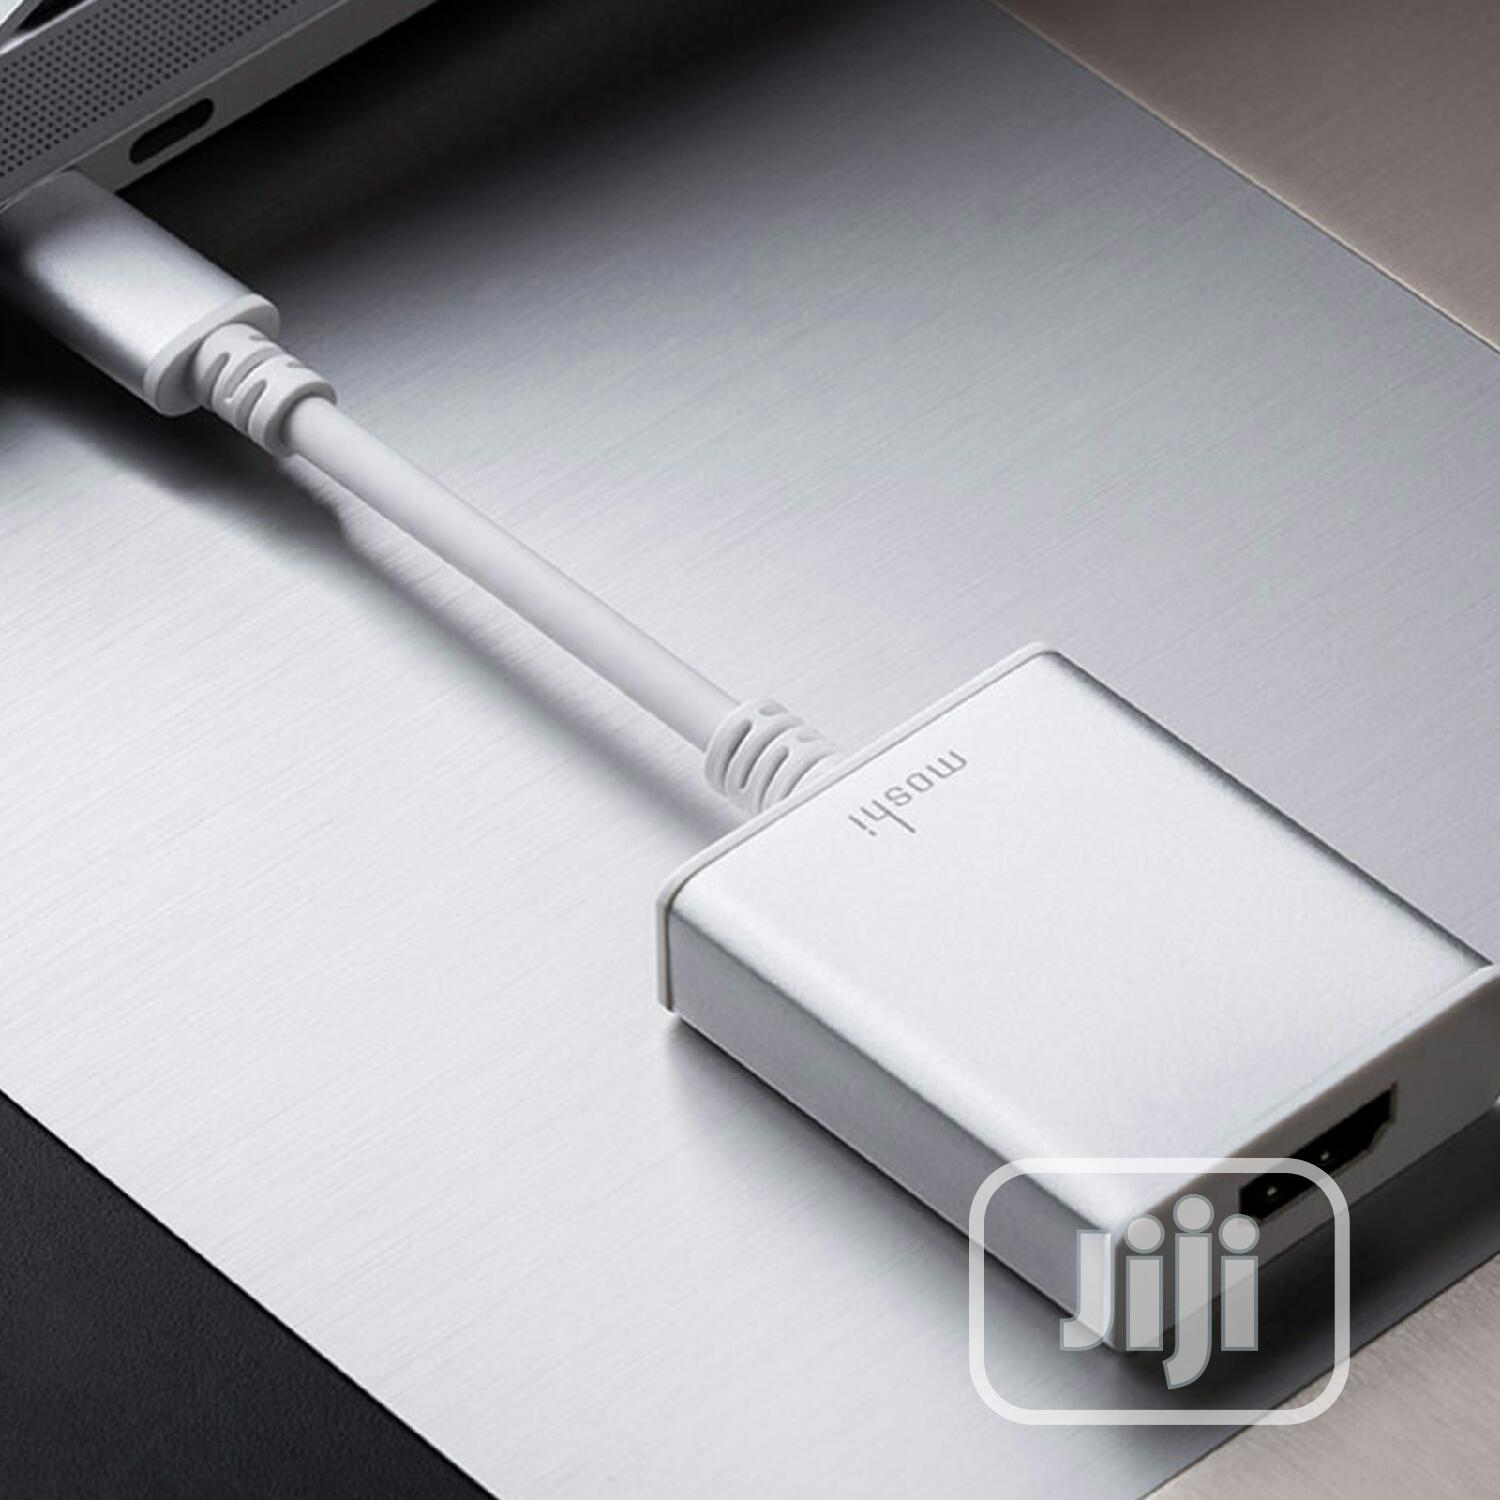 Moshi USB-C To HDMI Adapter Silver | Accessories & Supplies for Electronics for sale in Isolo, Lagos State, Nigeria